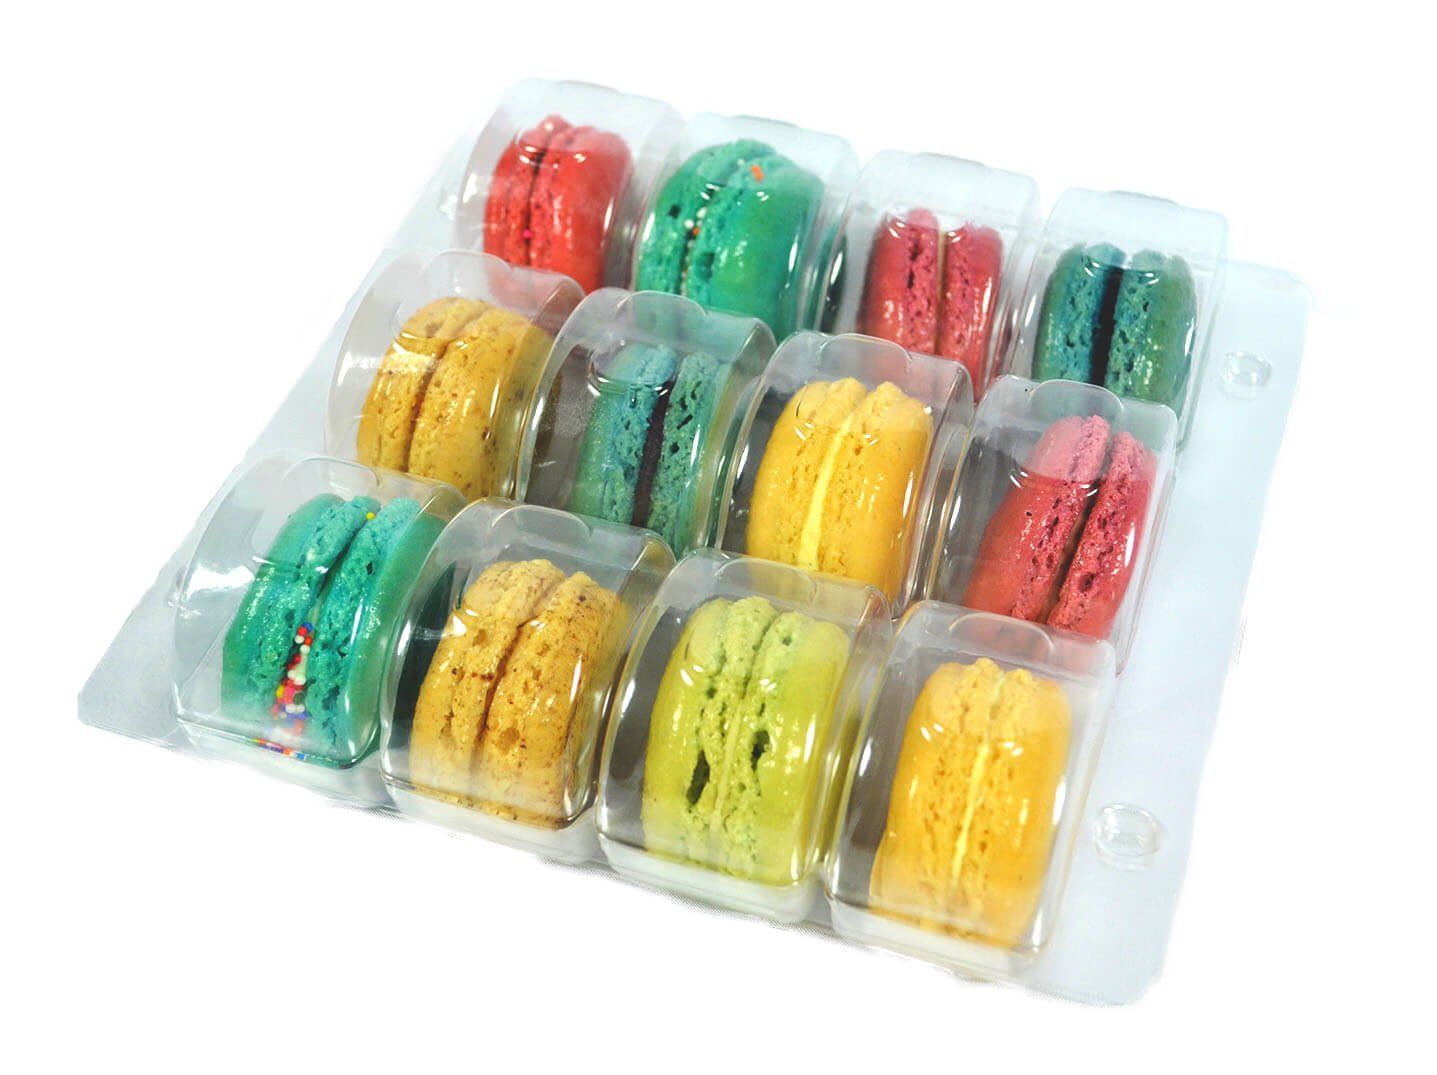 Vend Exchange Clear Plastic Macaron Containers - Fits 12 Macarons (Pack of 12)